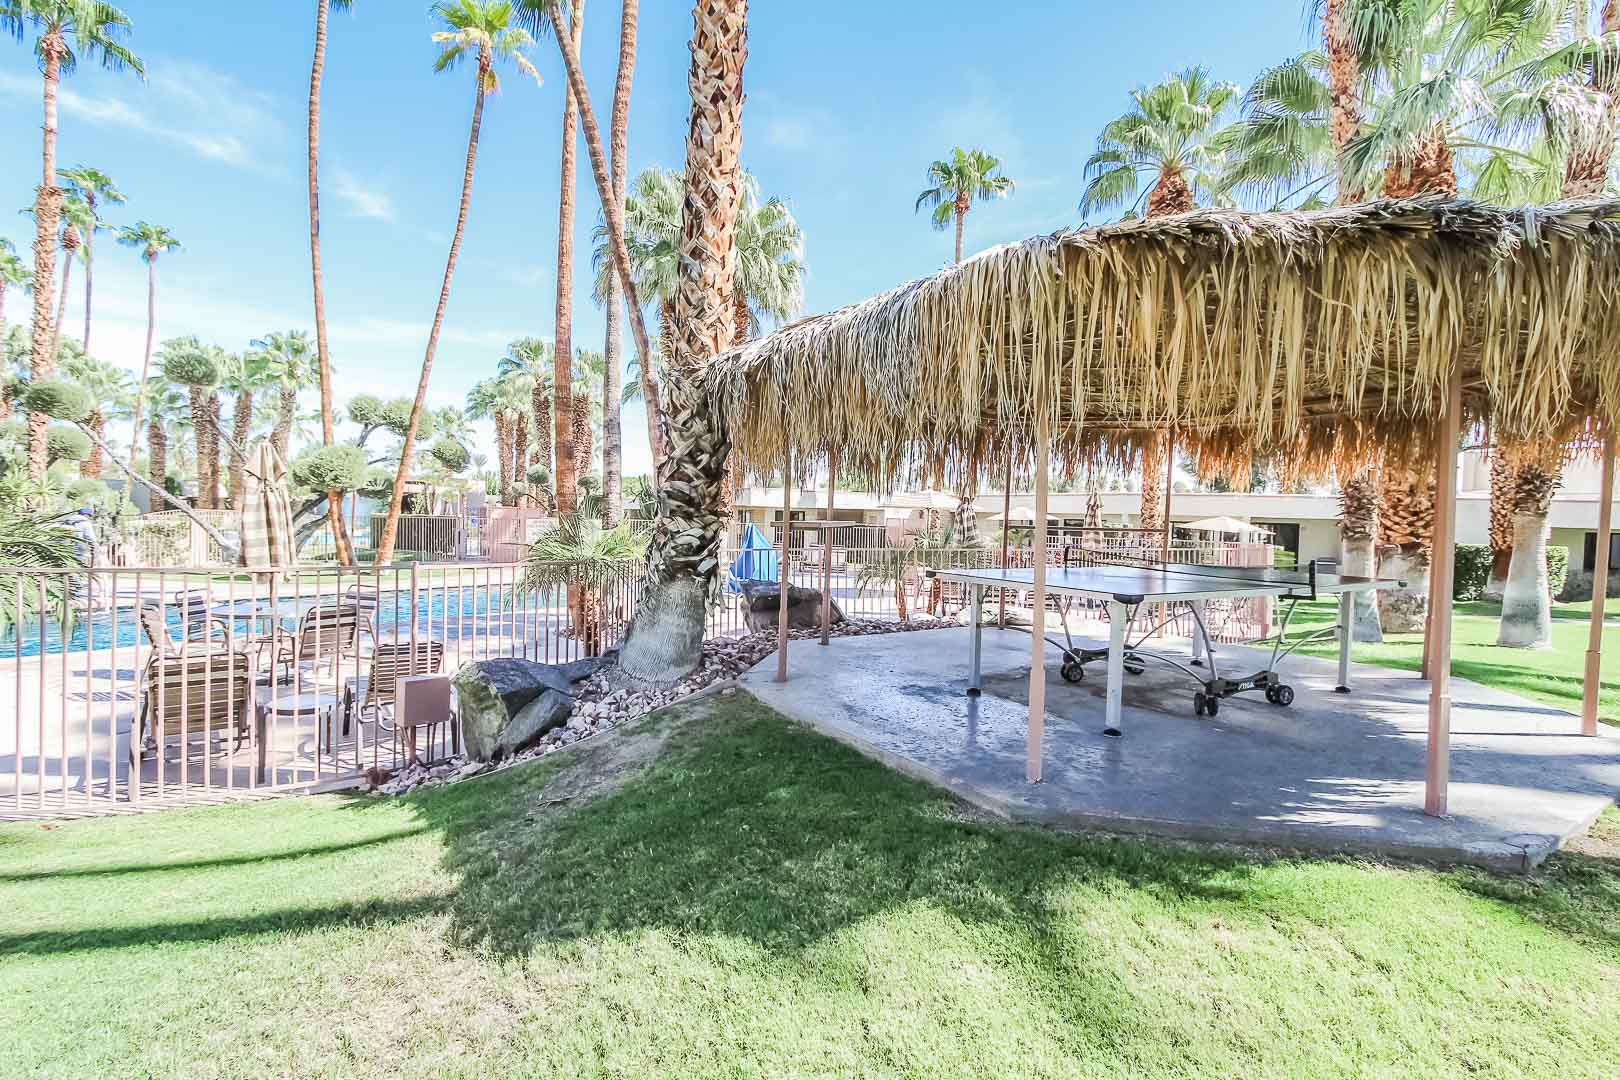 An outside pool and ping pong table at VRI's Desert Isle Resort in California.